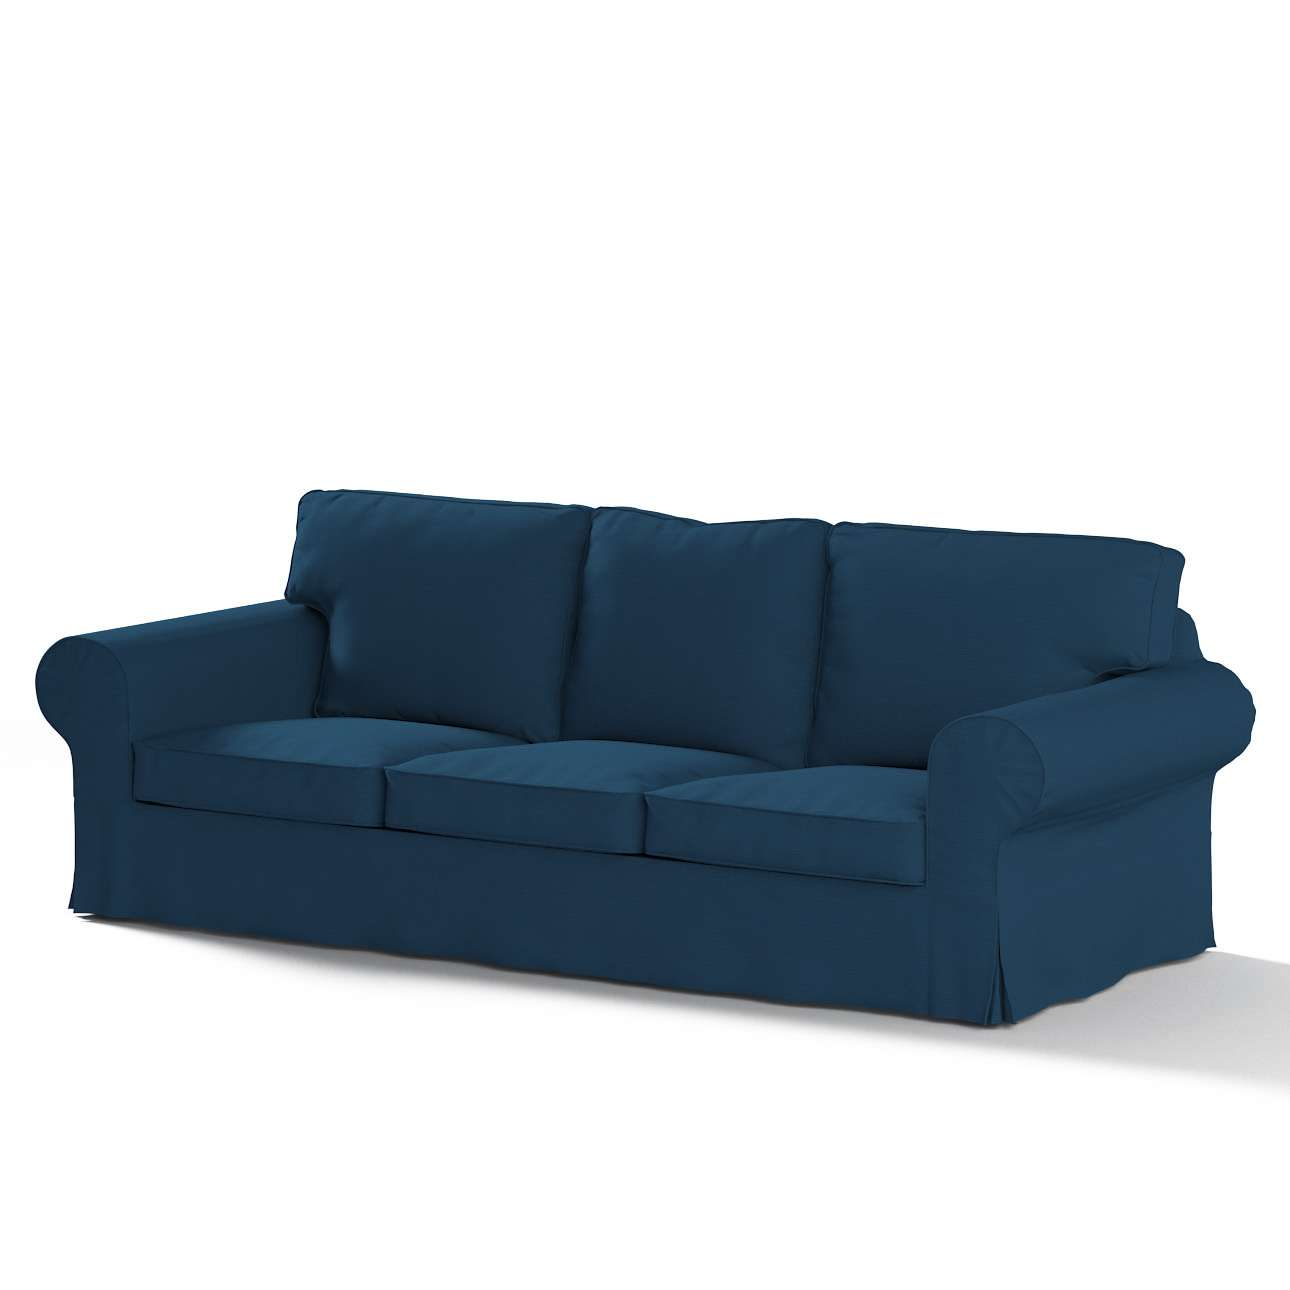 3 seater sofa cover converts to two single beds ektorp dark blue dekoria